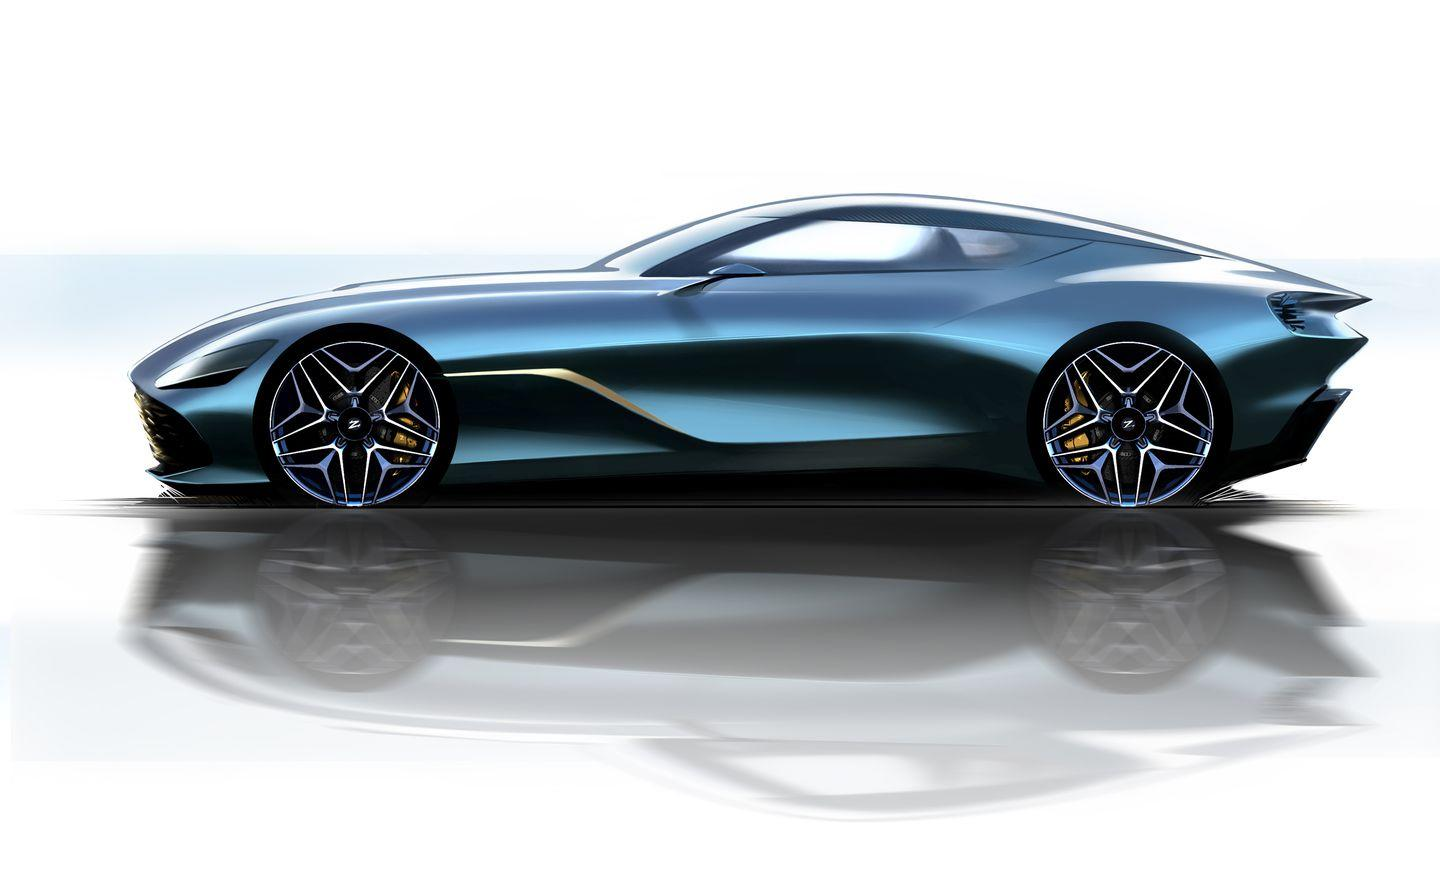 """<p>The design of the round vortex rear lights also seems to have been inspired by those of the last Zagato collaboration, the various Z versions of the <a href=""""https://www.caranddriver.com/news/a23285641/aston-martin-zagato-specials/"""" rel=""""nofollow noopener"""" target=""""_blank"""" data-ylk=""""slk:Vanquish"""" class=""""link rapid-noclick-resp"""">Vanquish</a>.</p>"""